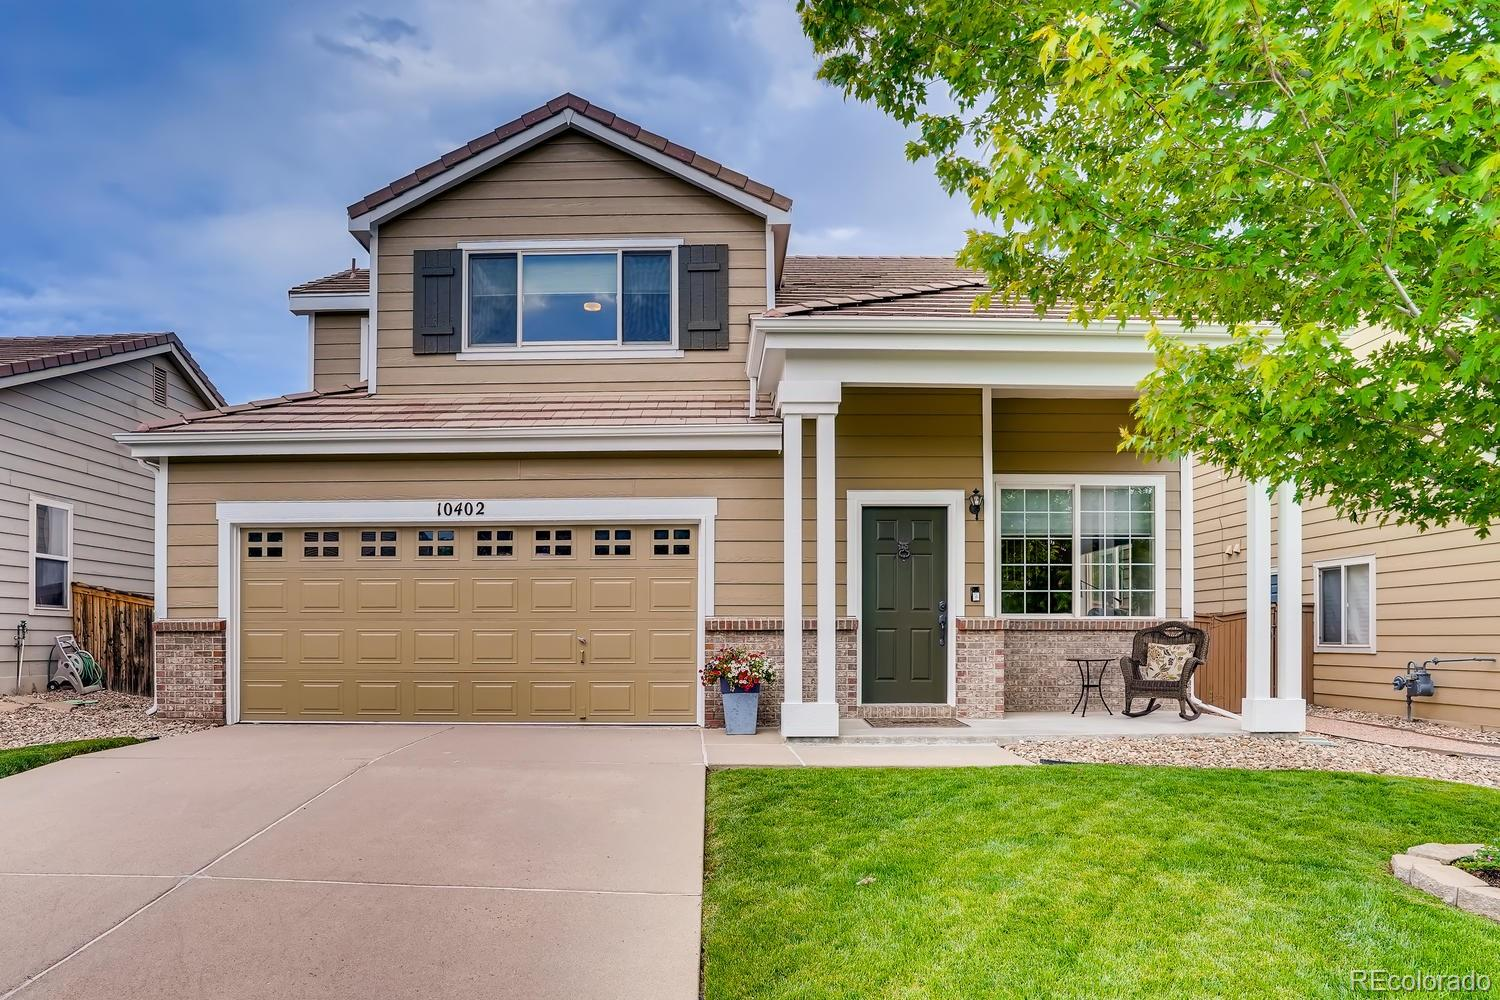 MLS# 5018466 - 1 - 10402 Tracewood Drive, Highlands Ranch, CO 80130